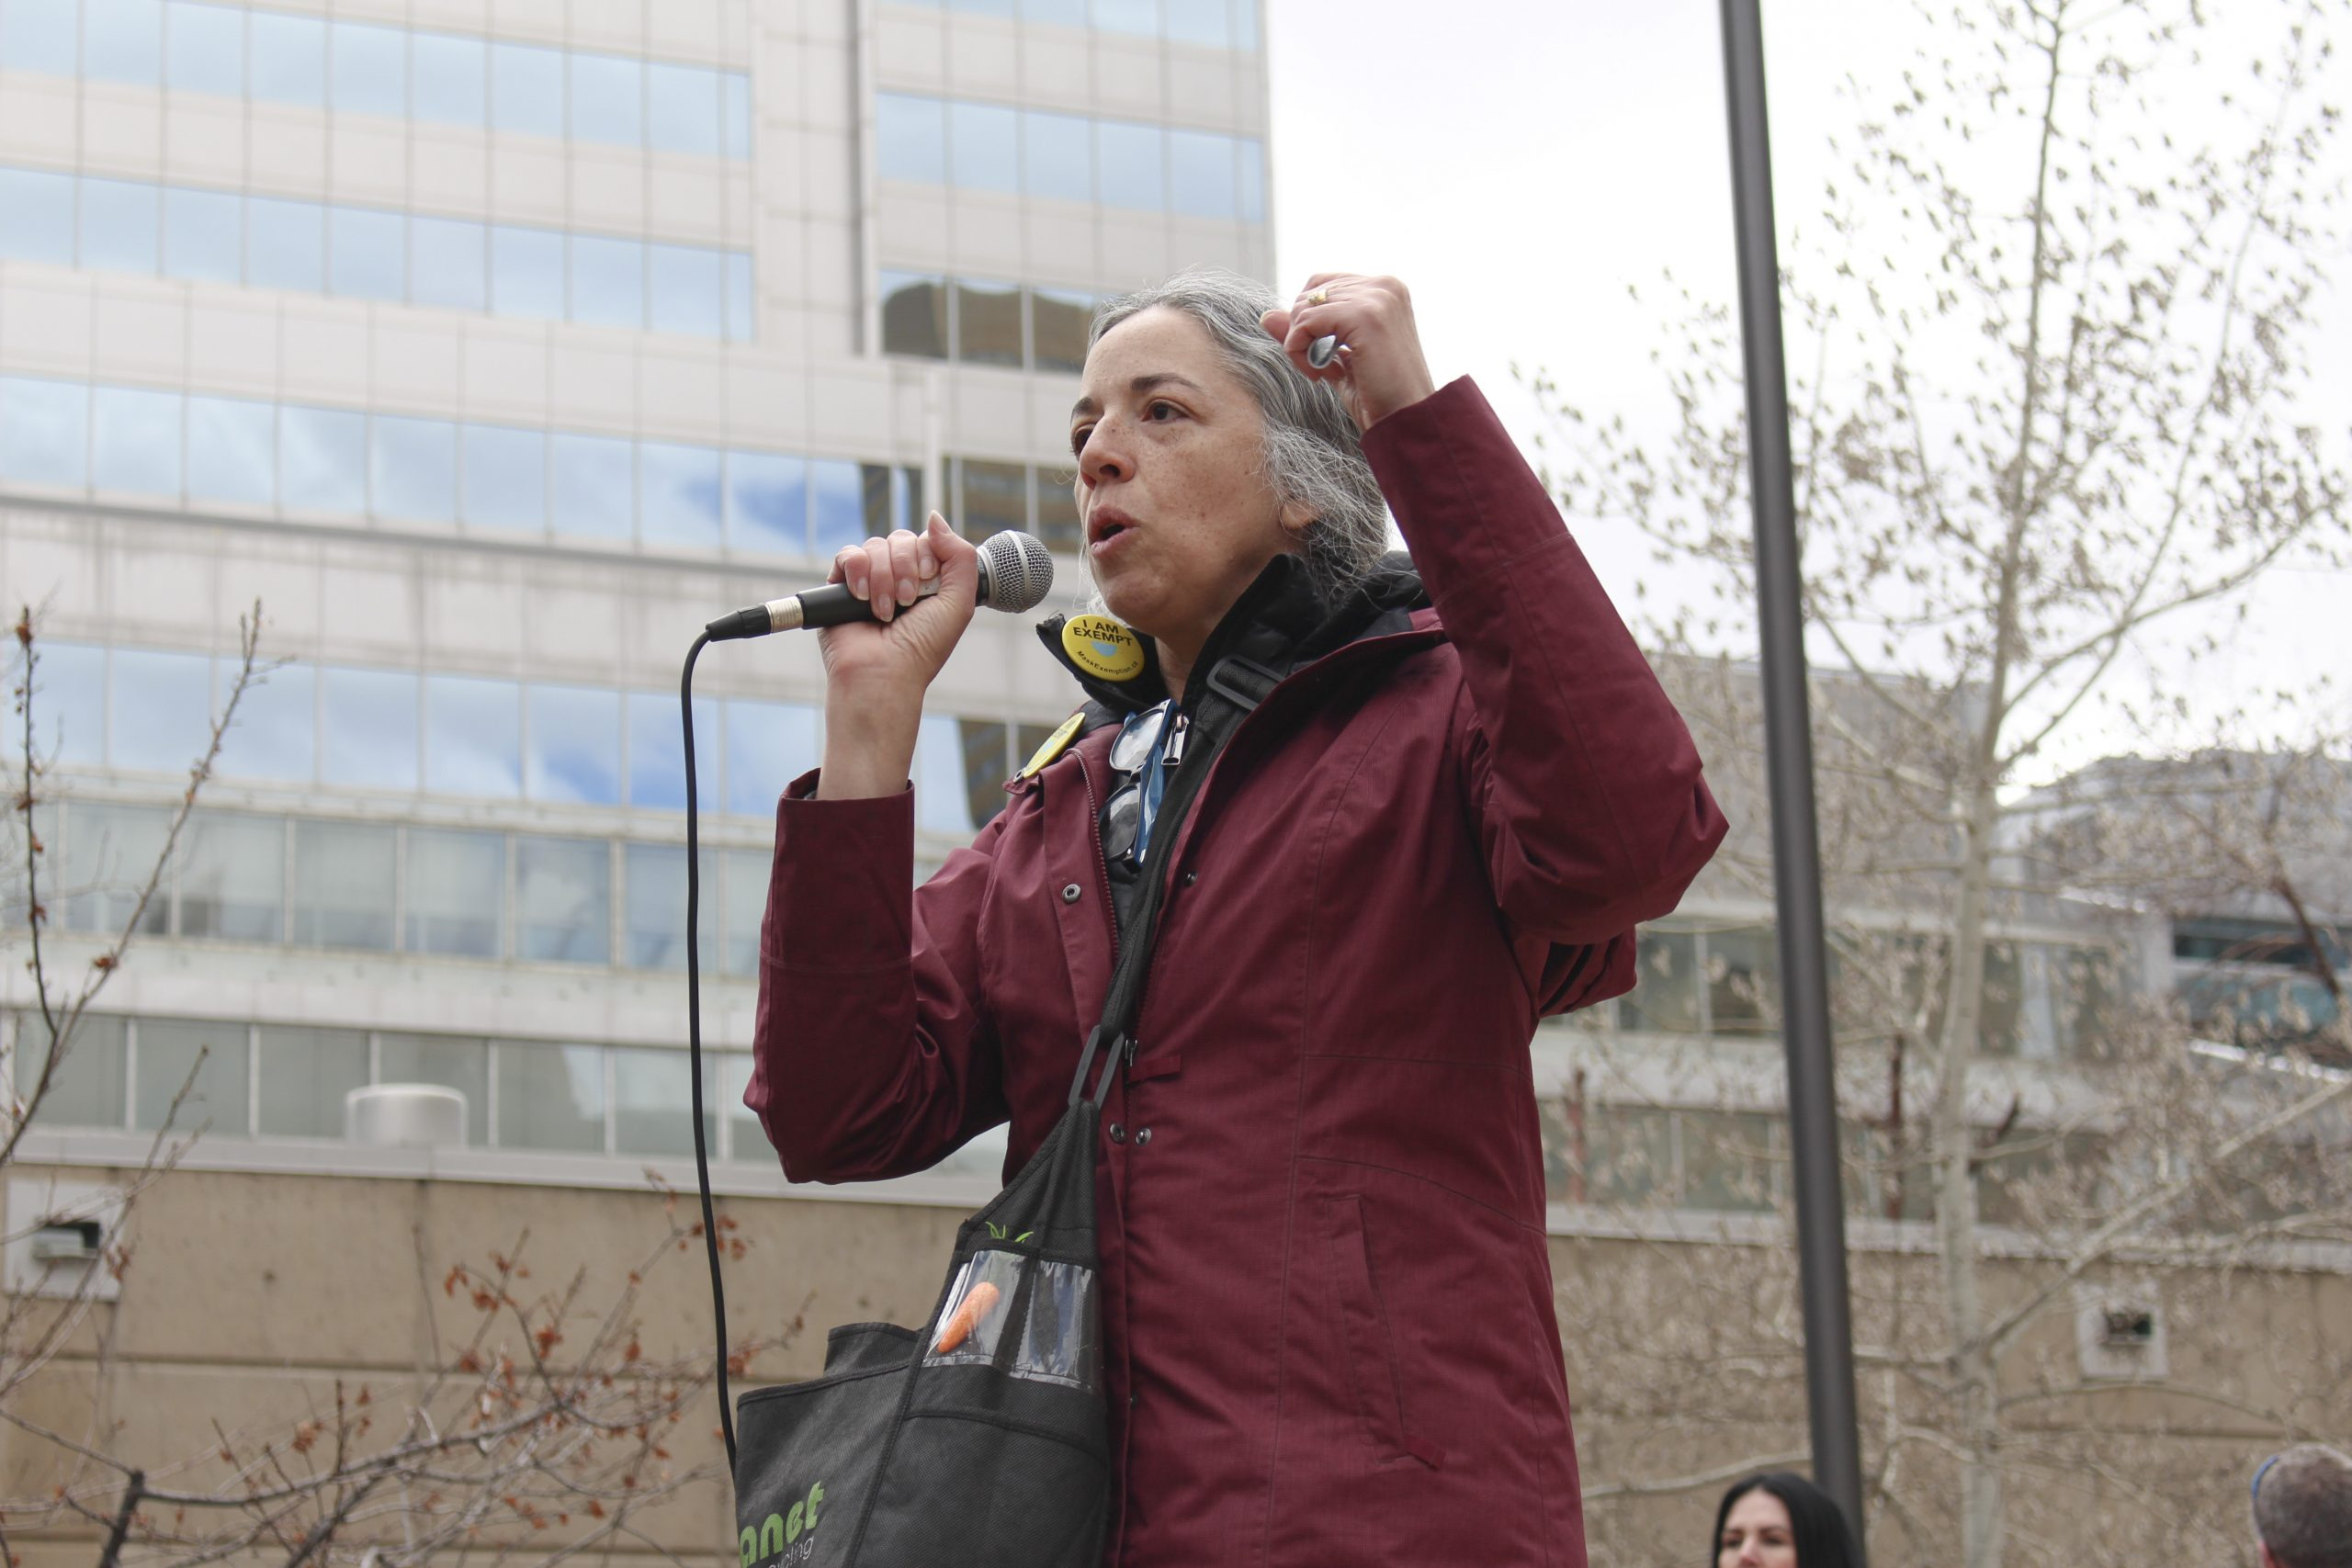 Adele Sanoy speaks briefly about prizes for best costume and dance moves during the march at the ÒSave Small BusinessÓ rally taking place at Courthouse Park in downtown Calgary on April 11, 2021. Sanoy is a volunteer with Freedom4Canada, and she has played a large role in the rallies that have gone on with Calgary Freedom Central. People attended the rally/march as a sign of support for the businesses that are facing hardships as a result of COVID-19 and the provincial lockdown, but also to express disdain for mask usage, vaccines, and compliance with the government and the enforcement of said closures. (Photo by Alejandro Melgar/SAIT)